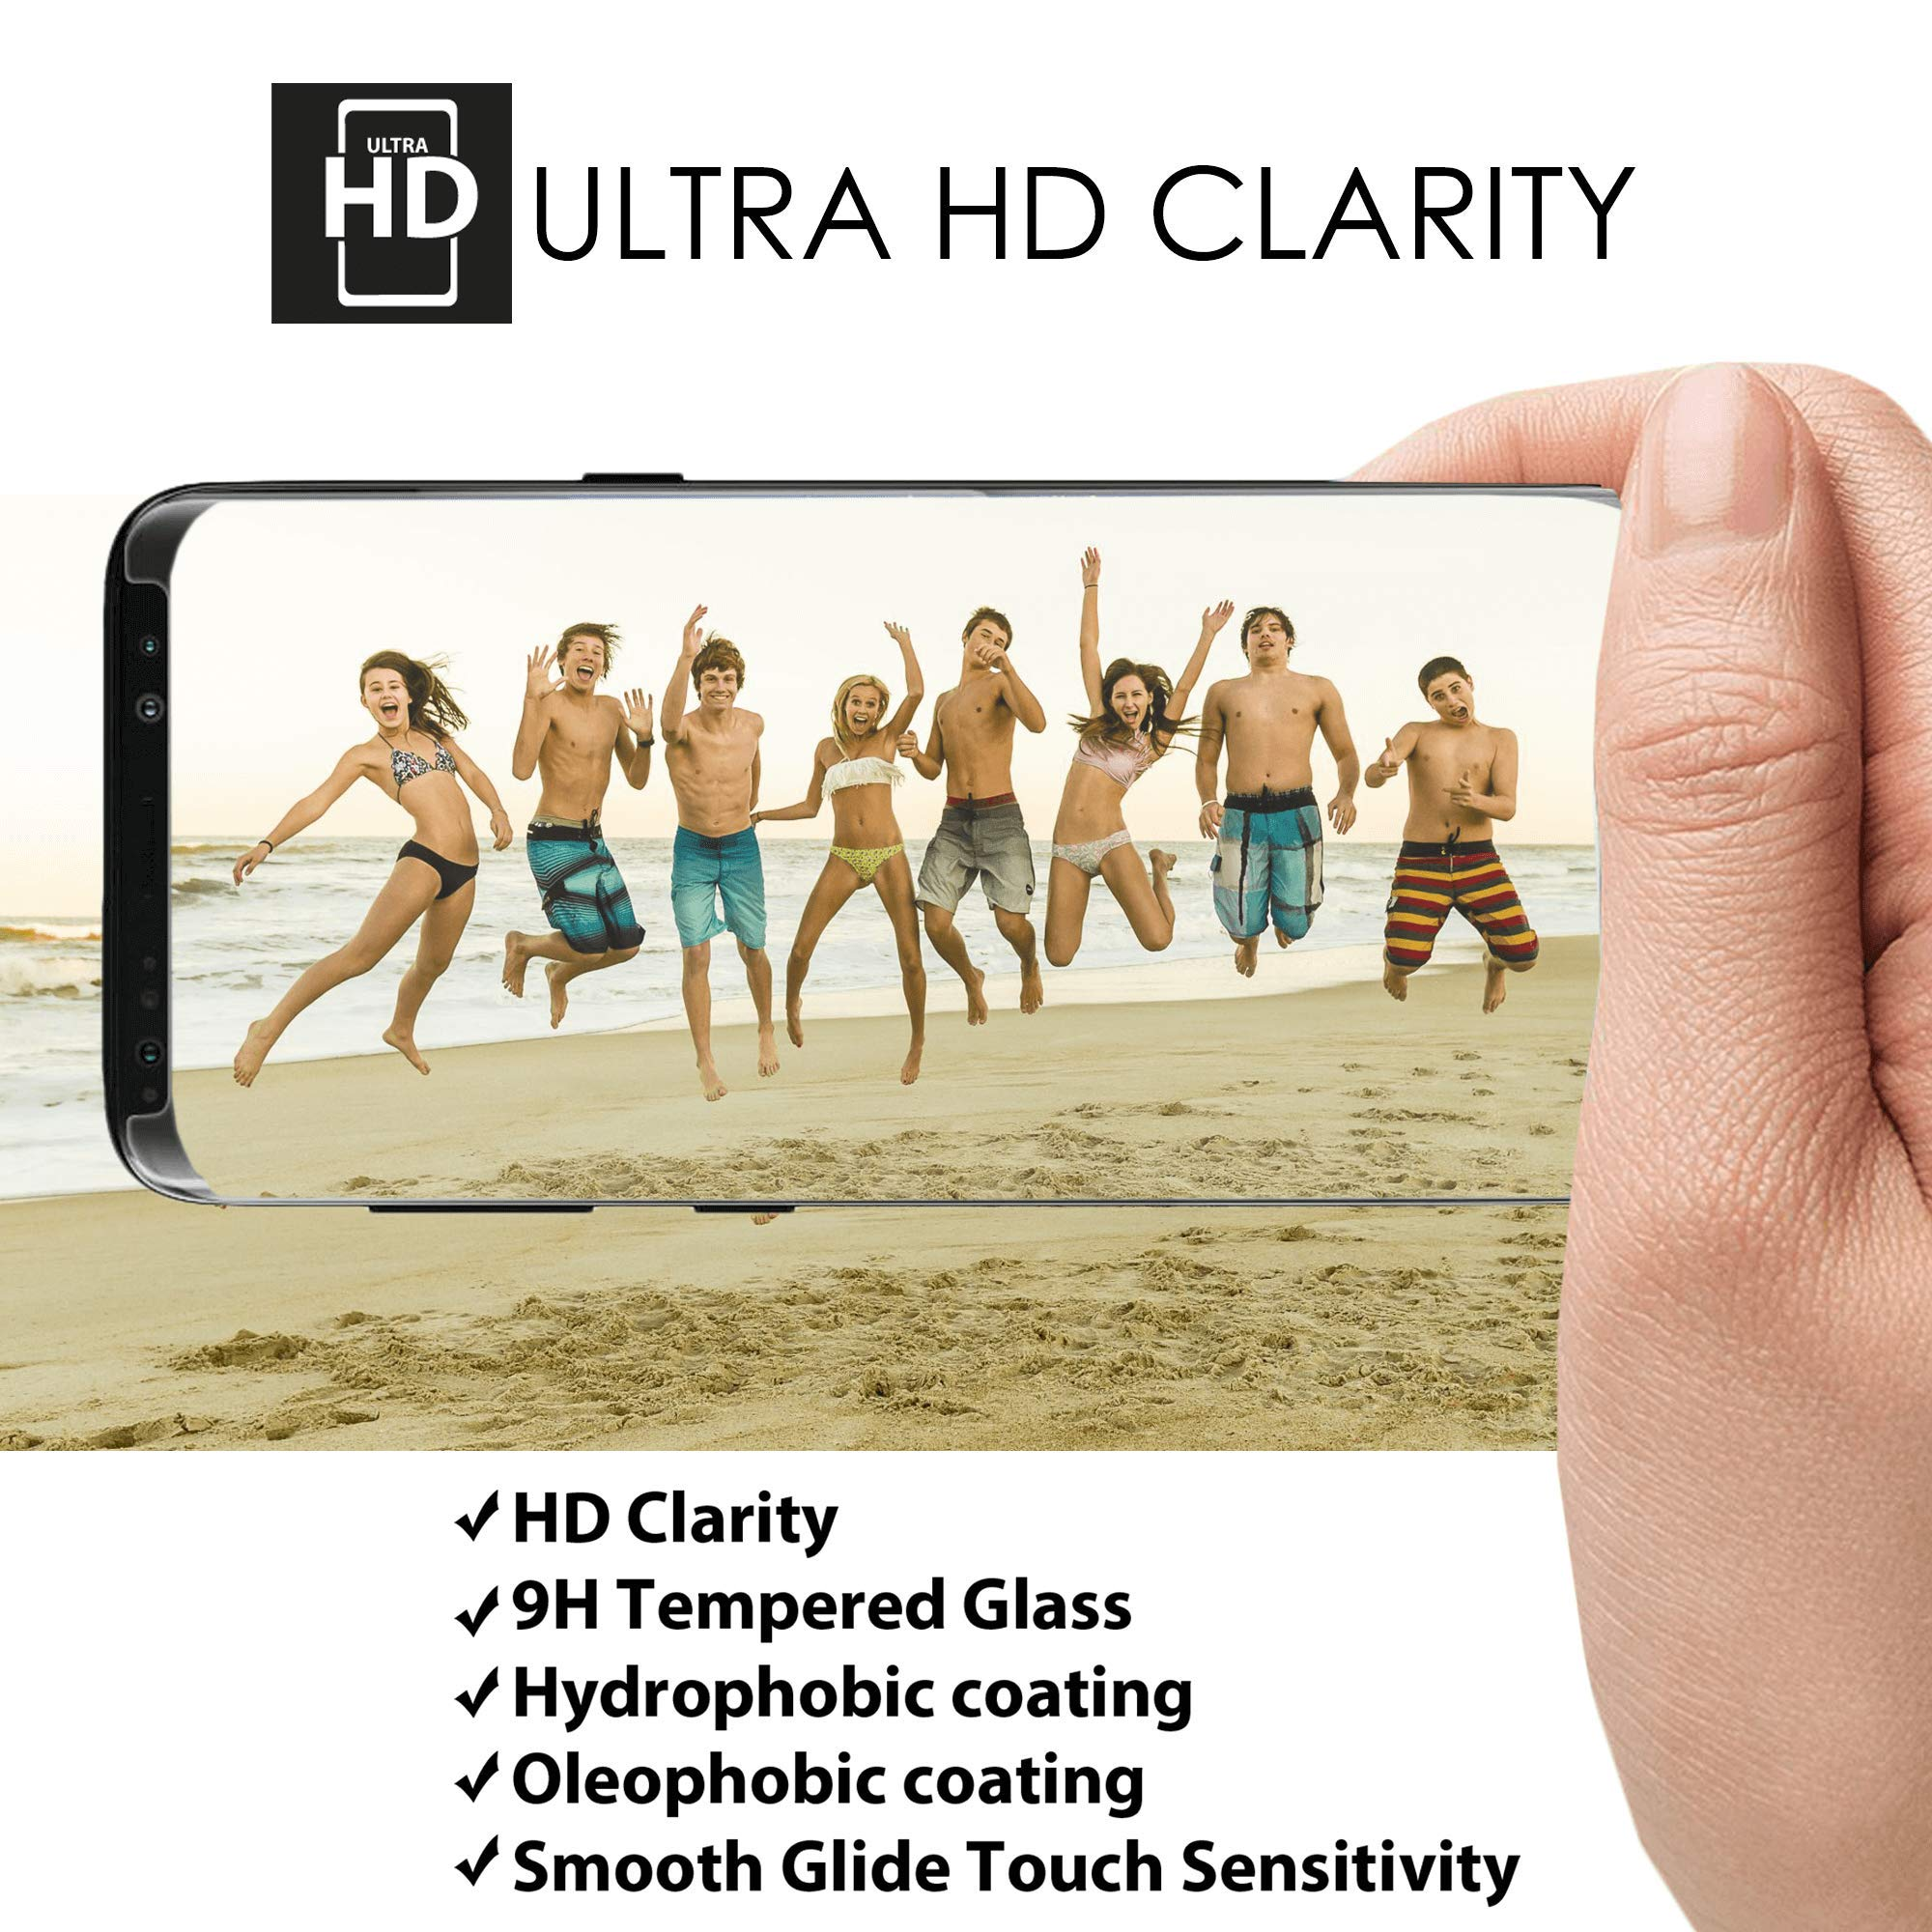 Clearview Samsung Galaxy S8 Liquid Tempered Glass Screen Protector - 9H Ultra Clear HD Japanese Glass, Full Screen Edge Coverage, Easy Install, Loca UV Light, Case Friendly (Full Kit) by Clearview (Image #4)